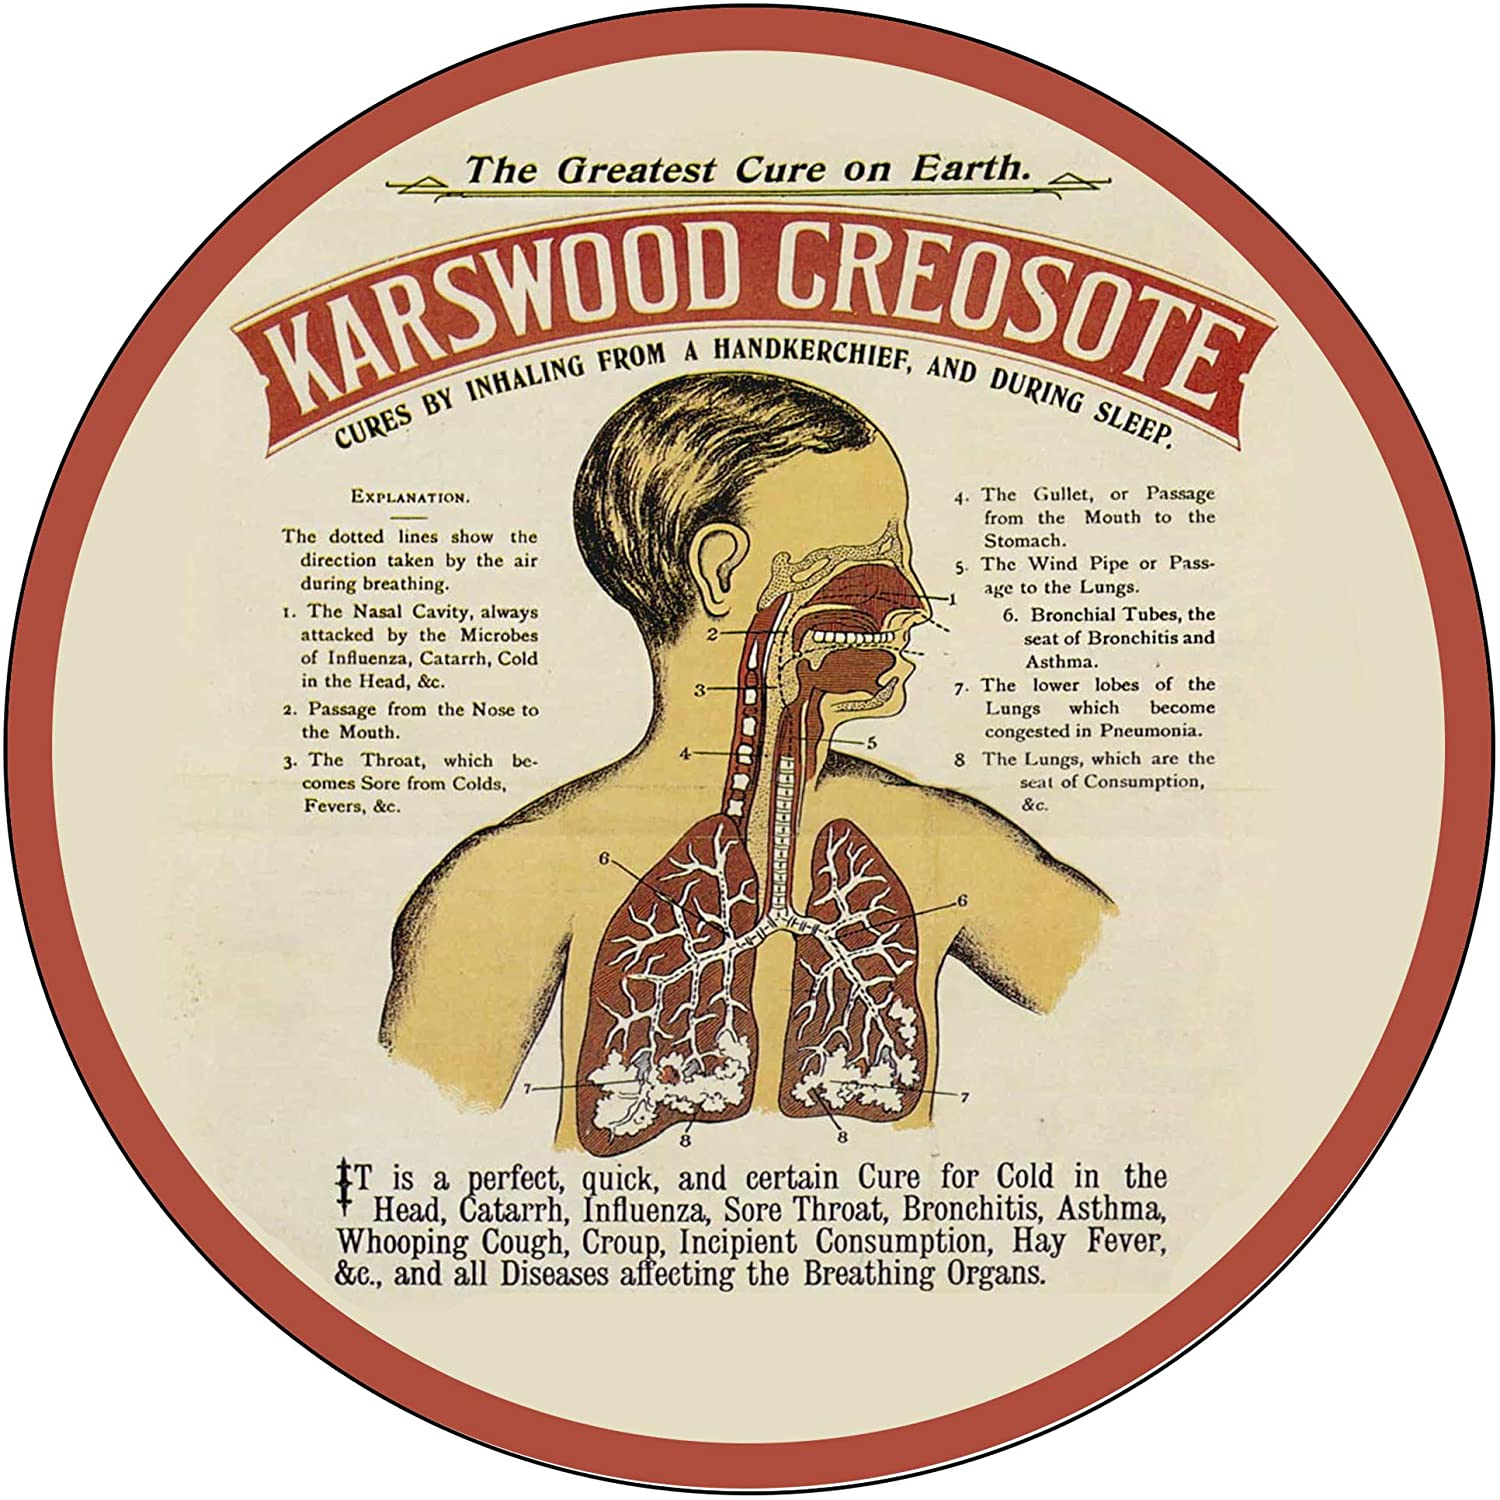 Brotherhood Vintage Gas Sign Reproduction Vintage Metal Signs Round Metal Tin Sign for Garage and Home 8 Inch Diameter – Karswood Creosote Cures by Inhaling Greatest Cure on Earth